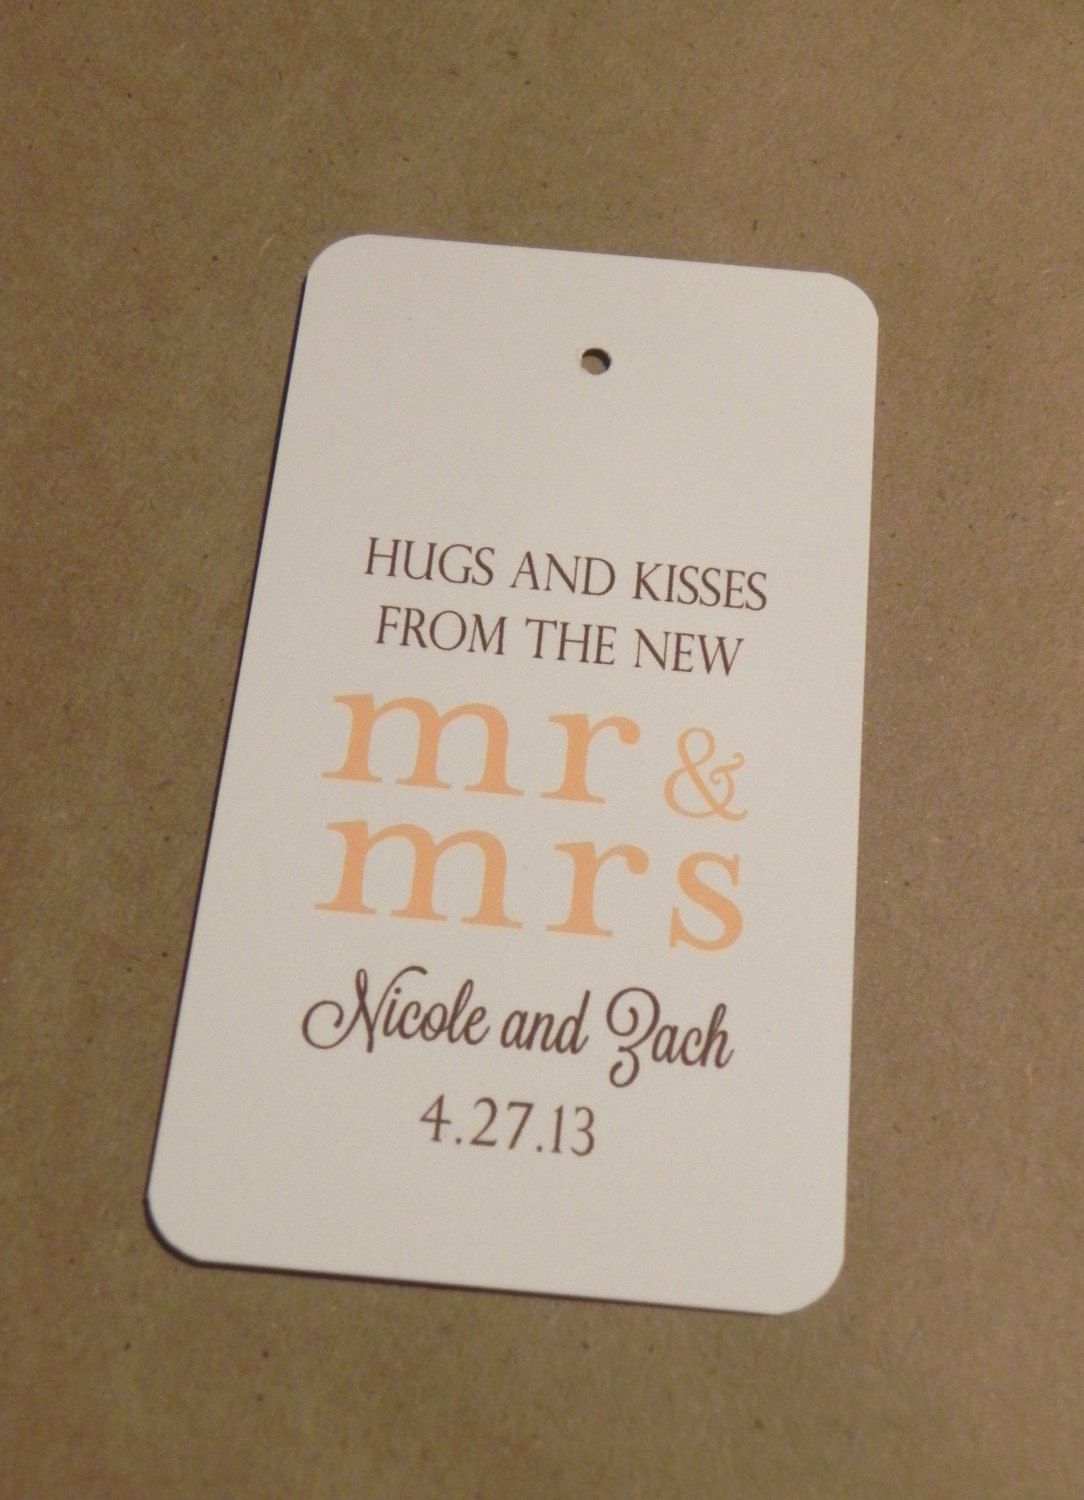 Wedding Favor Tag Hang Mr And Mrs Hugs Kisses Sweets Treats Gift Welcome Label Twine From Darby Cards 0 55 Via Etsy